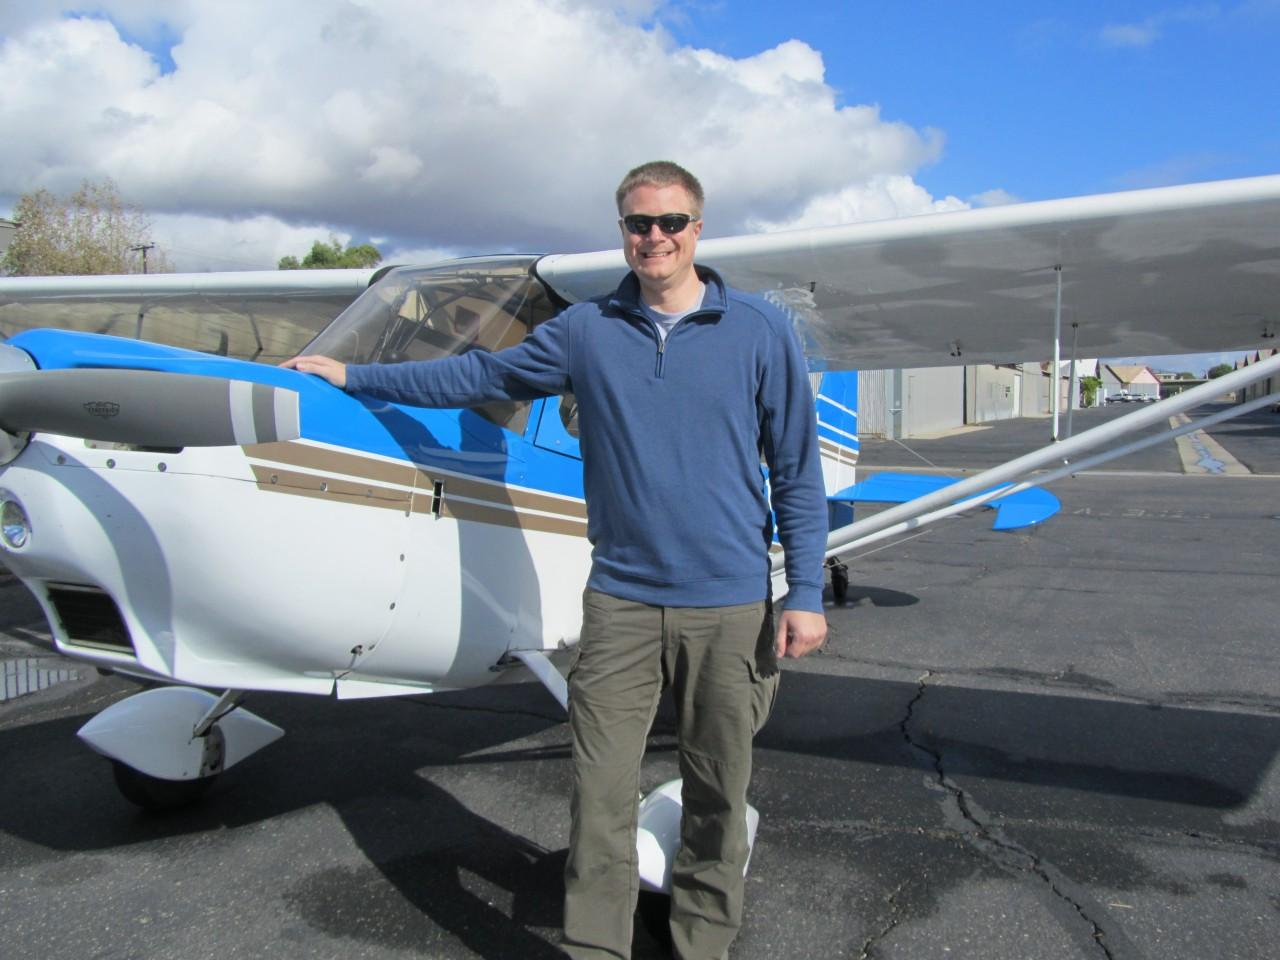 Tailwheel Endorsement - Jason Lux!